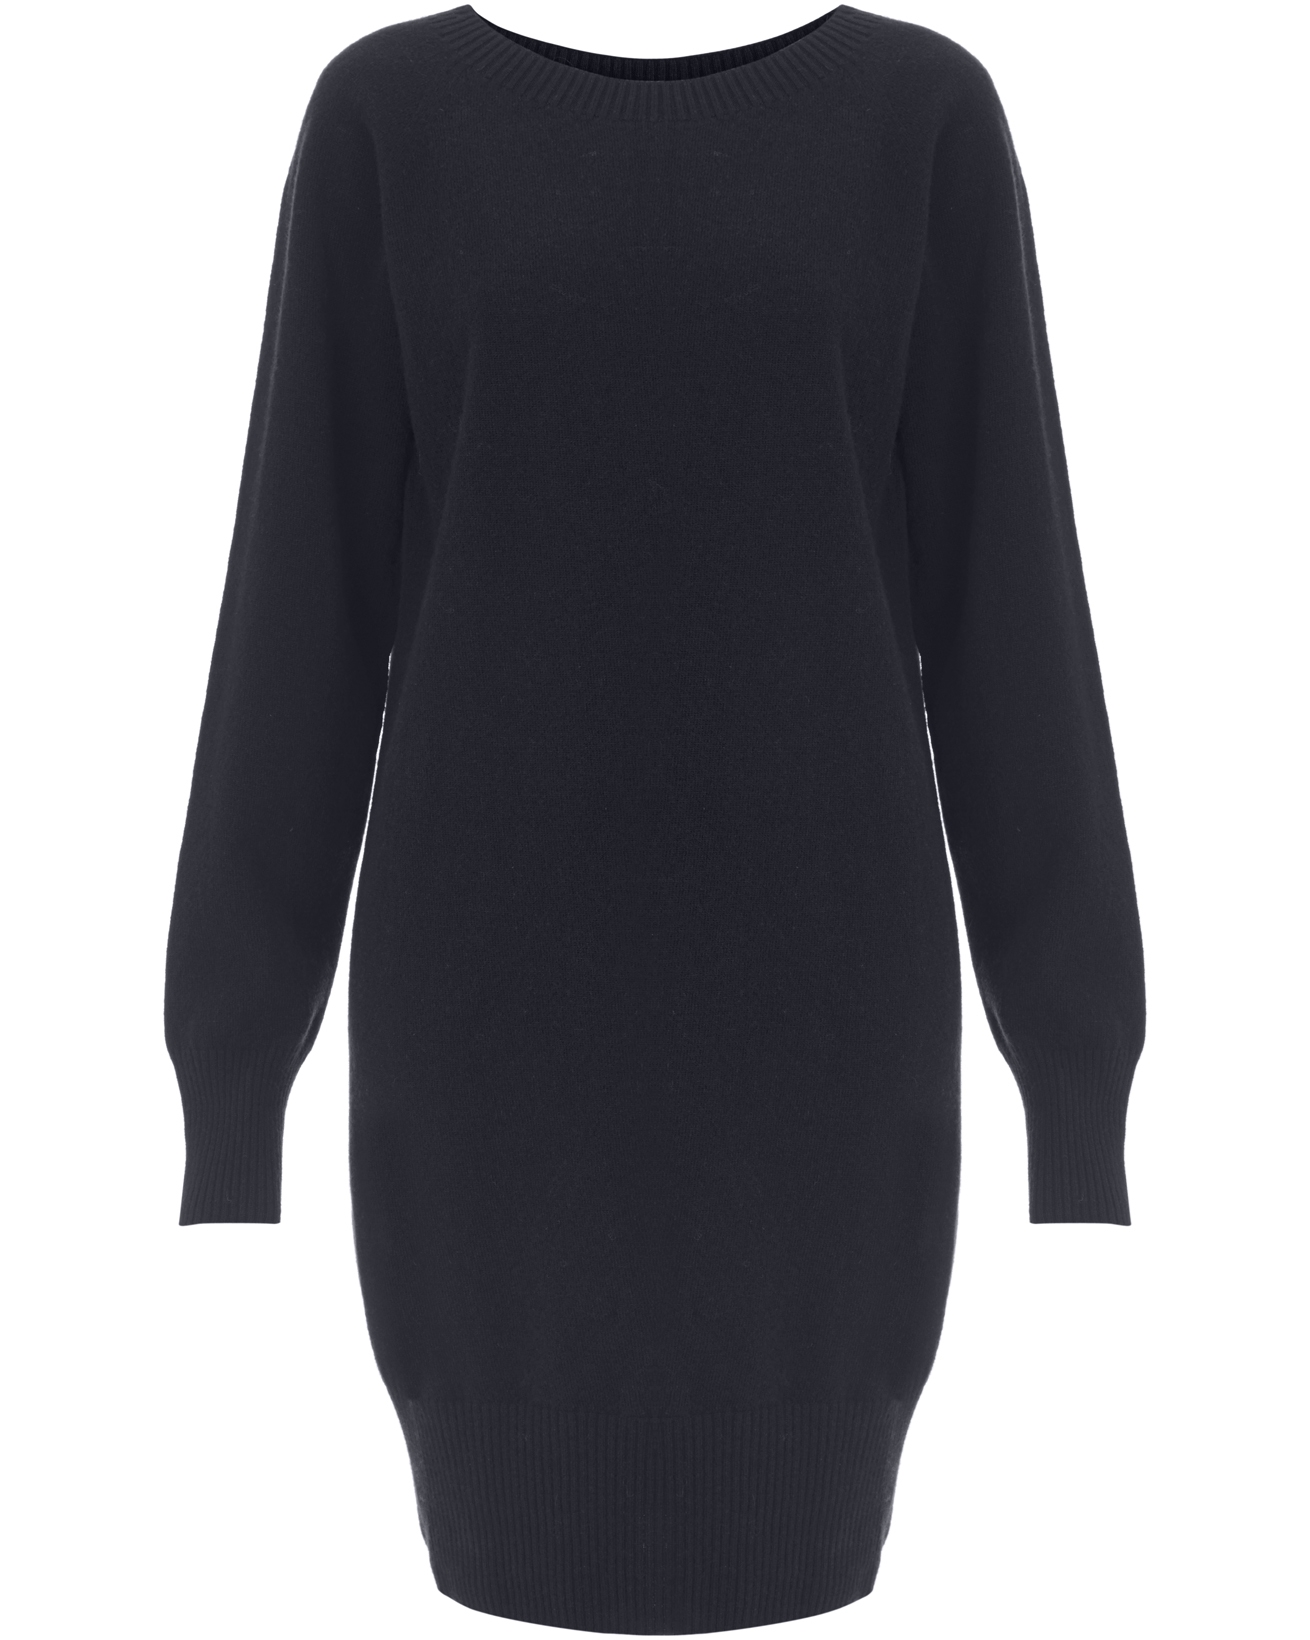 6170_supersoft_dress_dark_navy_front_aw16.jpg